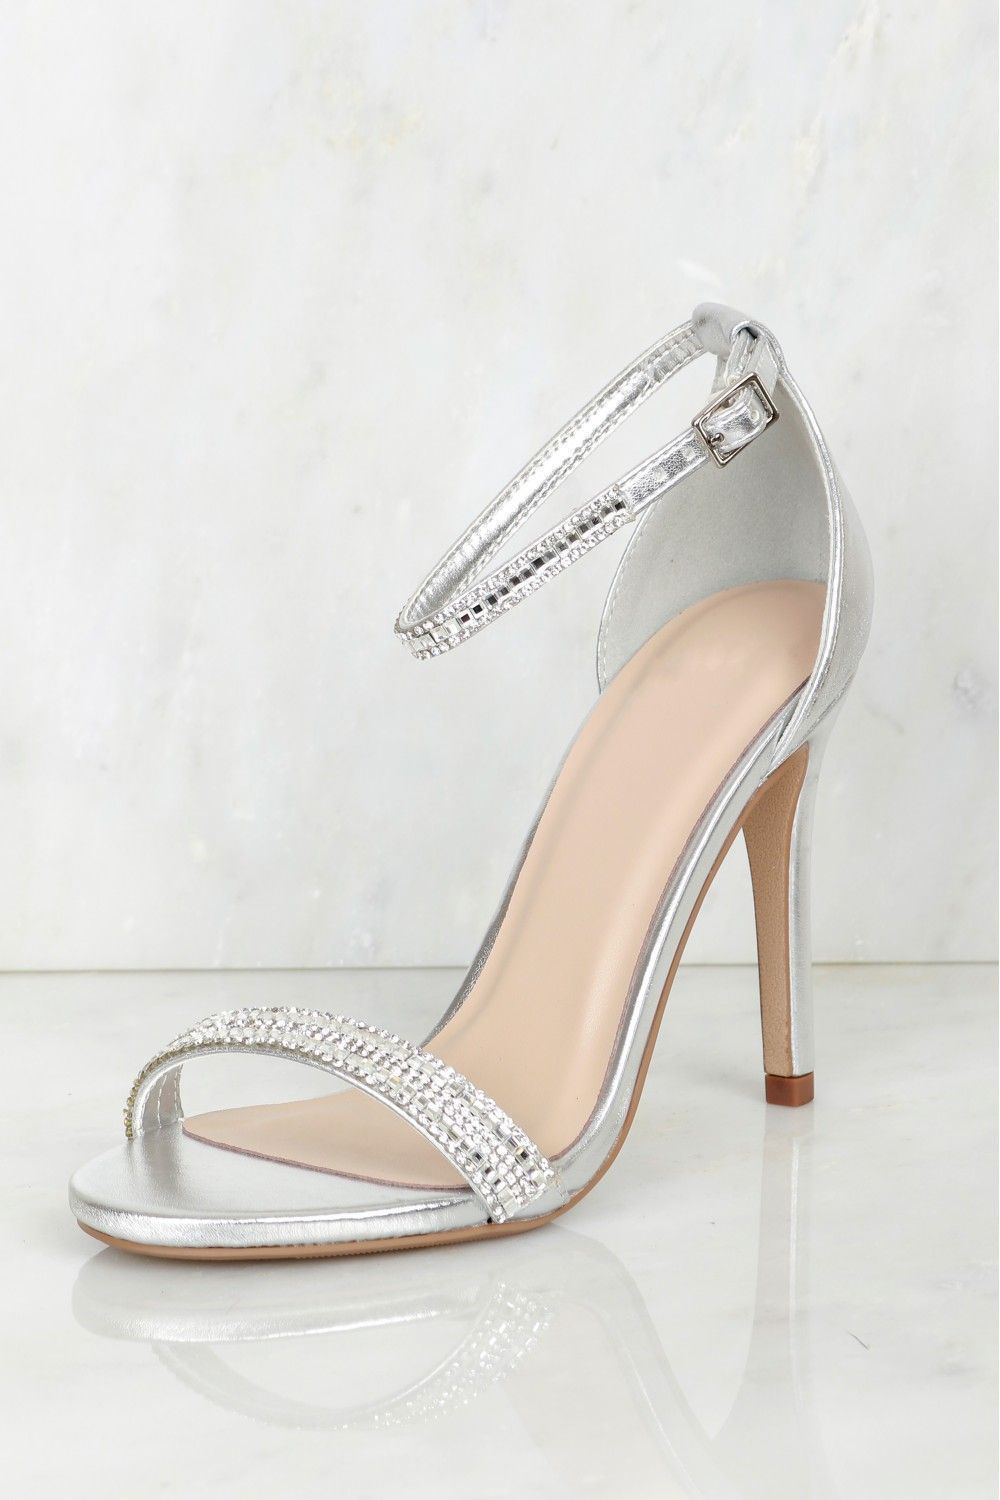 HerStyle Charming Ankle Strap Rounded Buckle Open Toe Stiletto Heel (Silver)